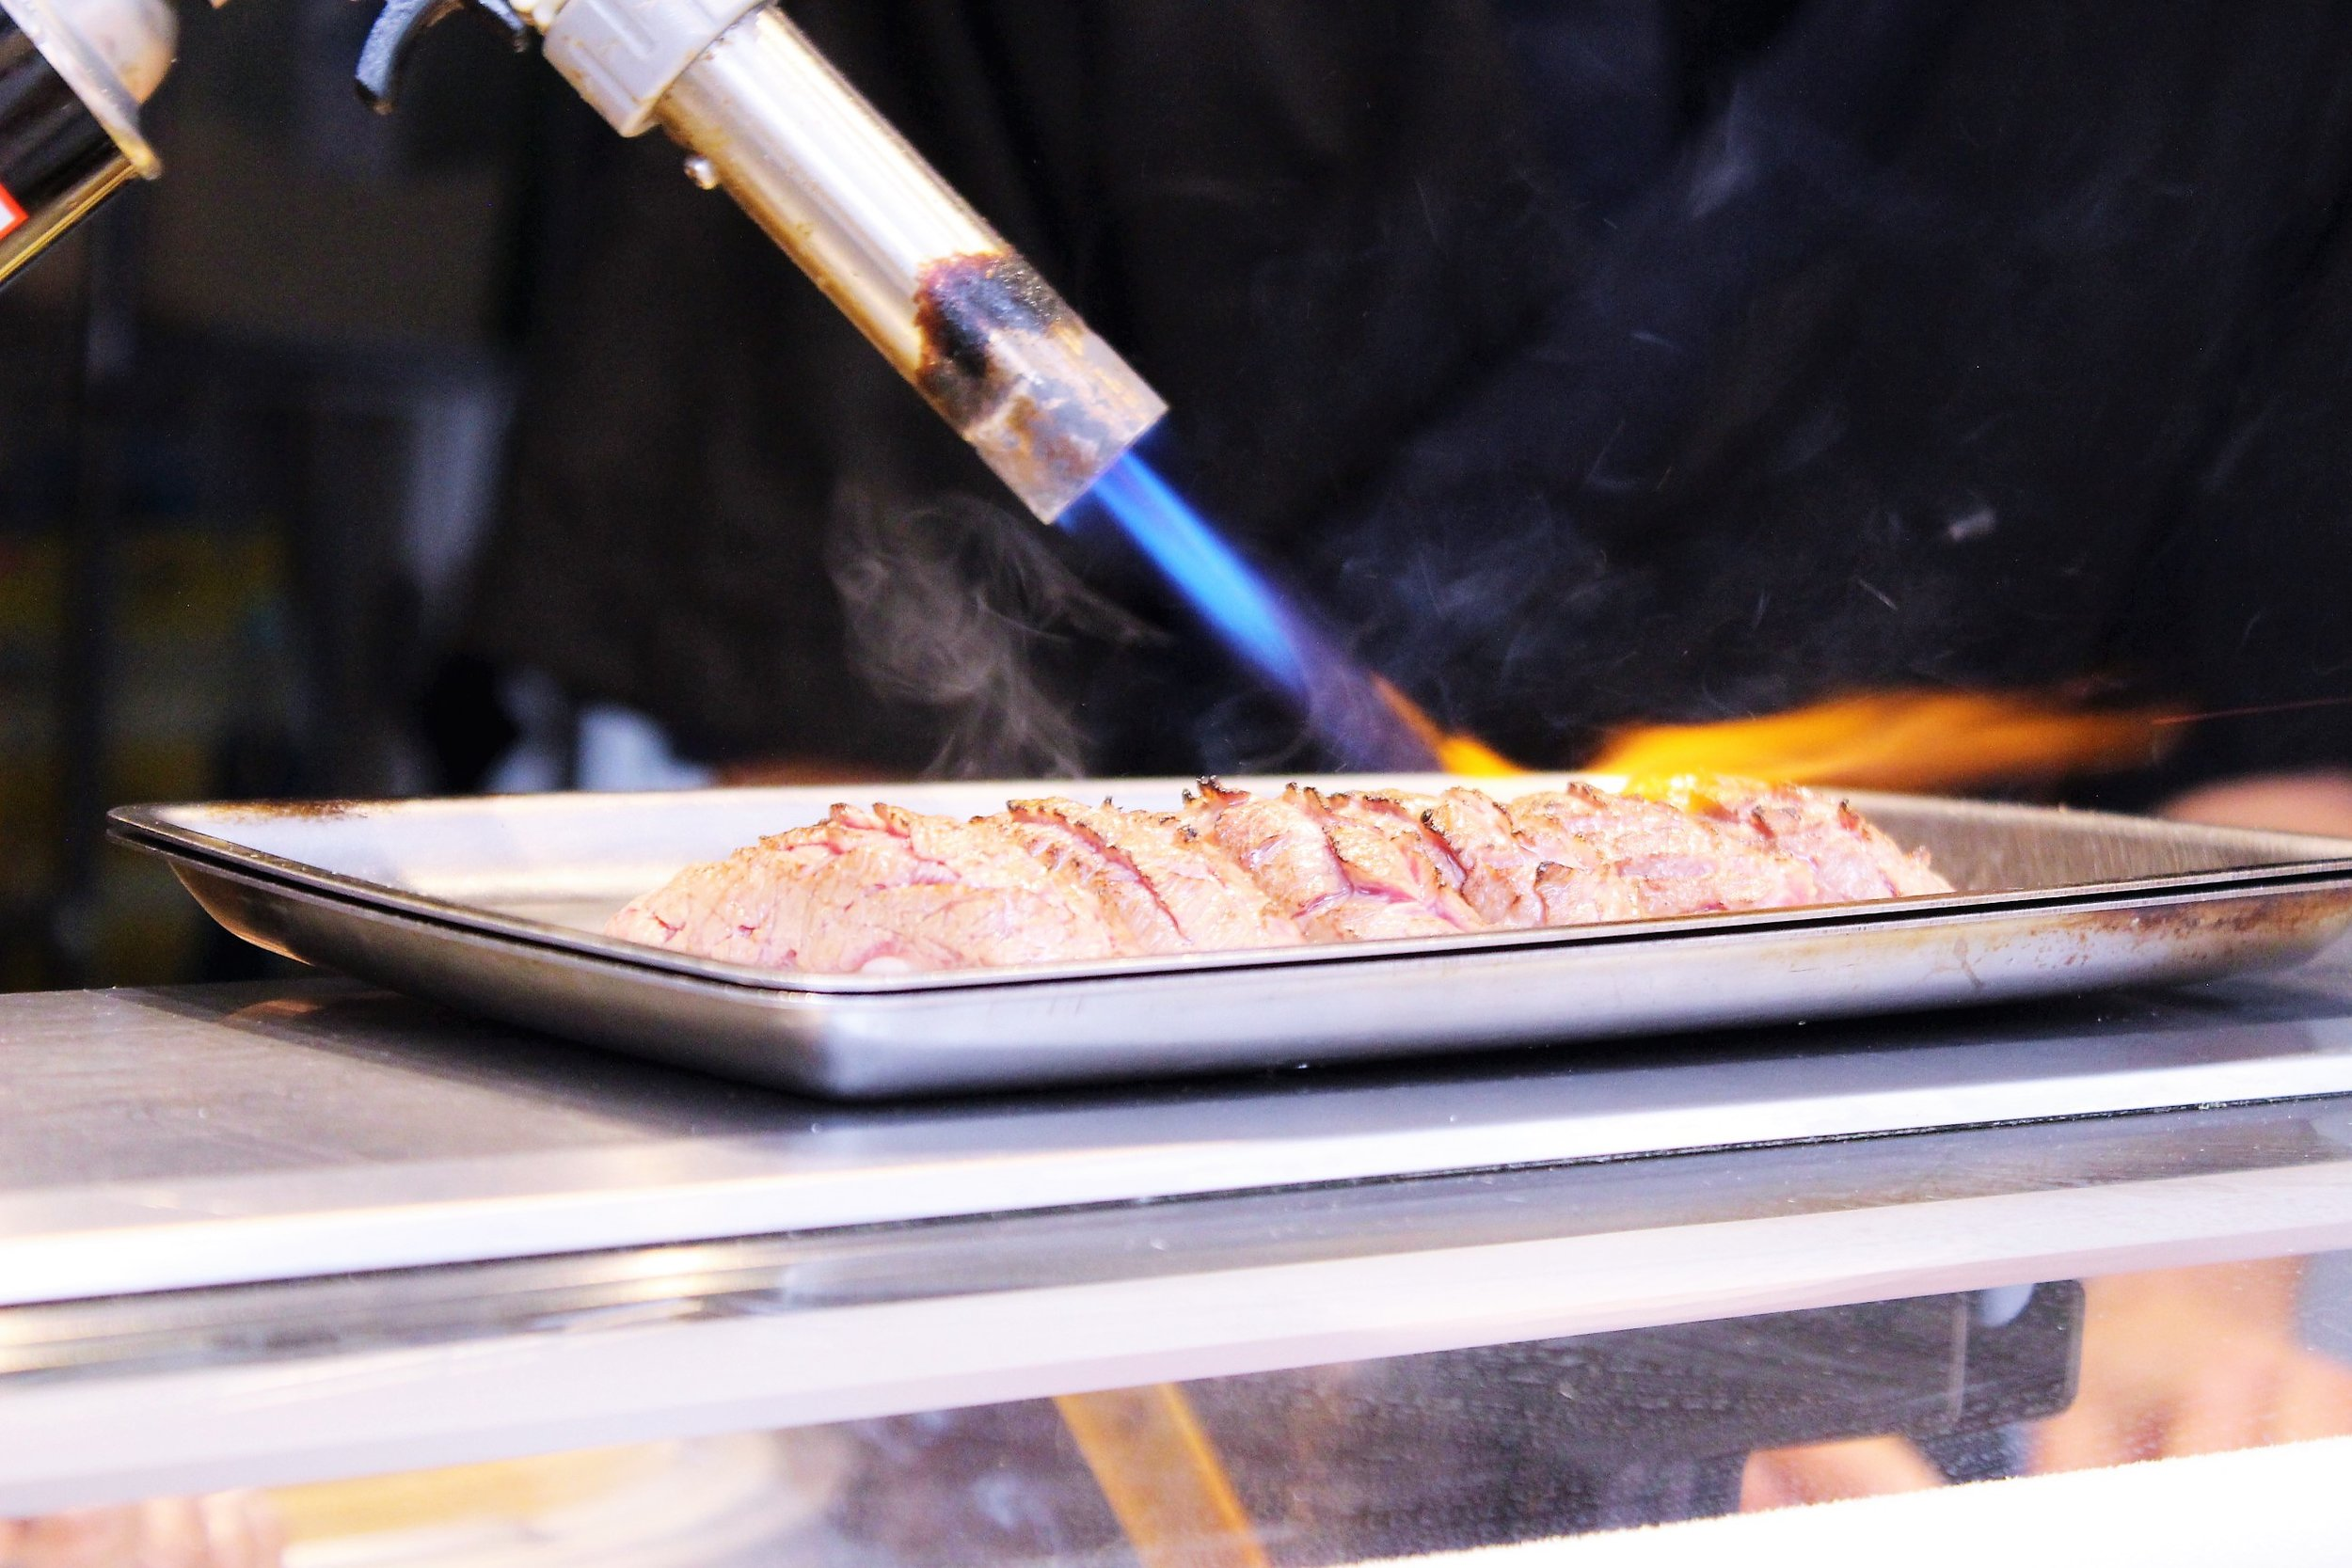 Torching the sushi